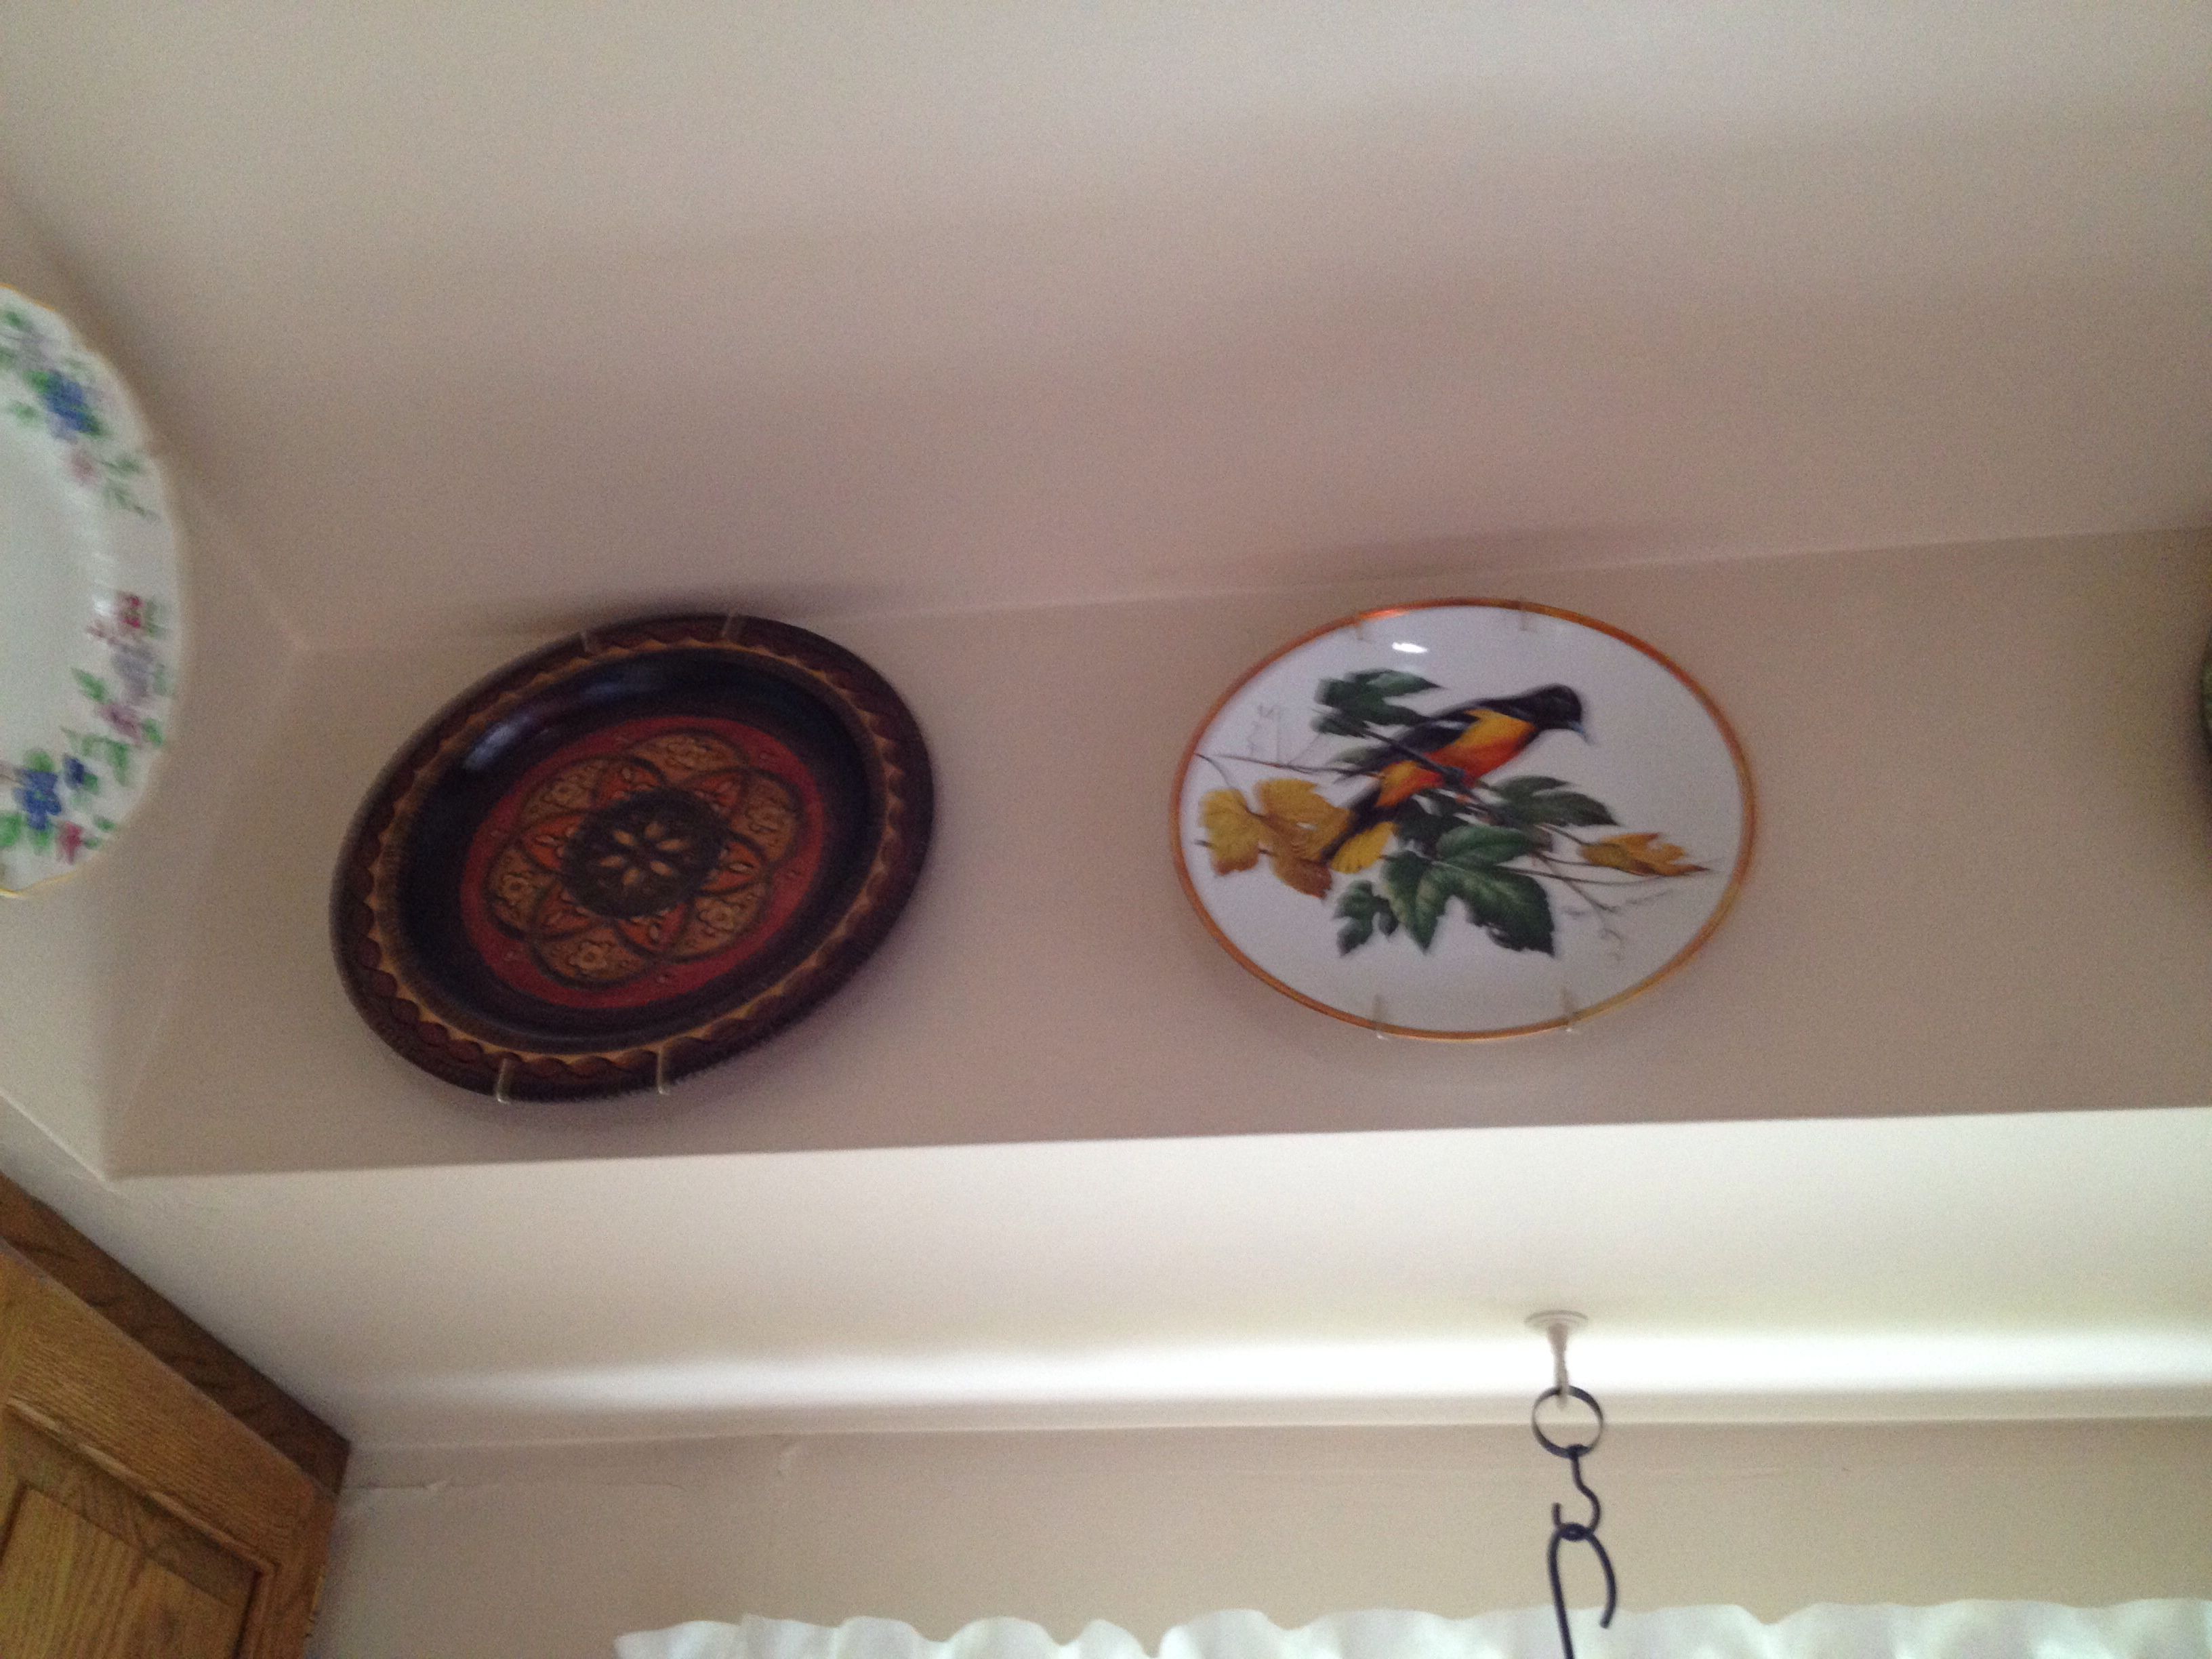 Ukrainian wooden plate and Baltimore oriole plate